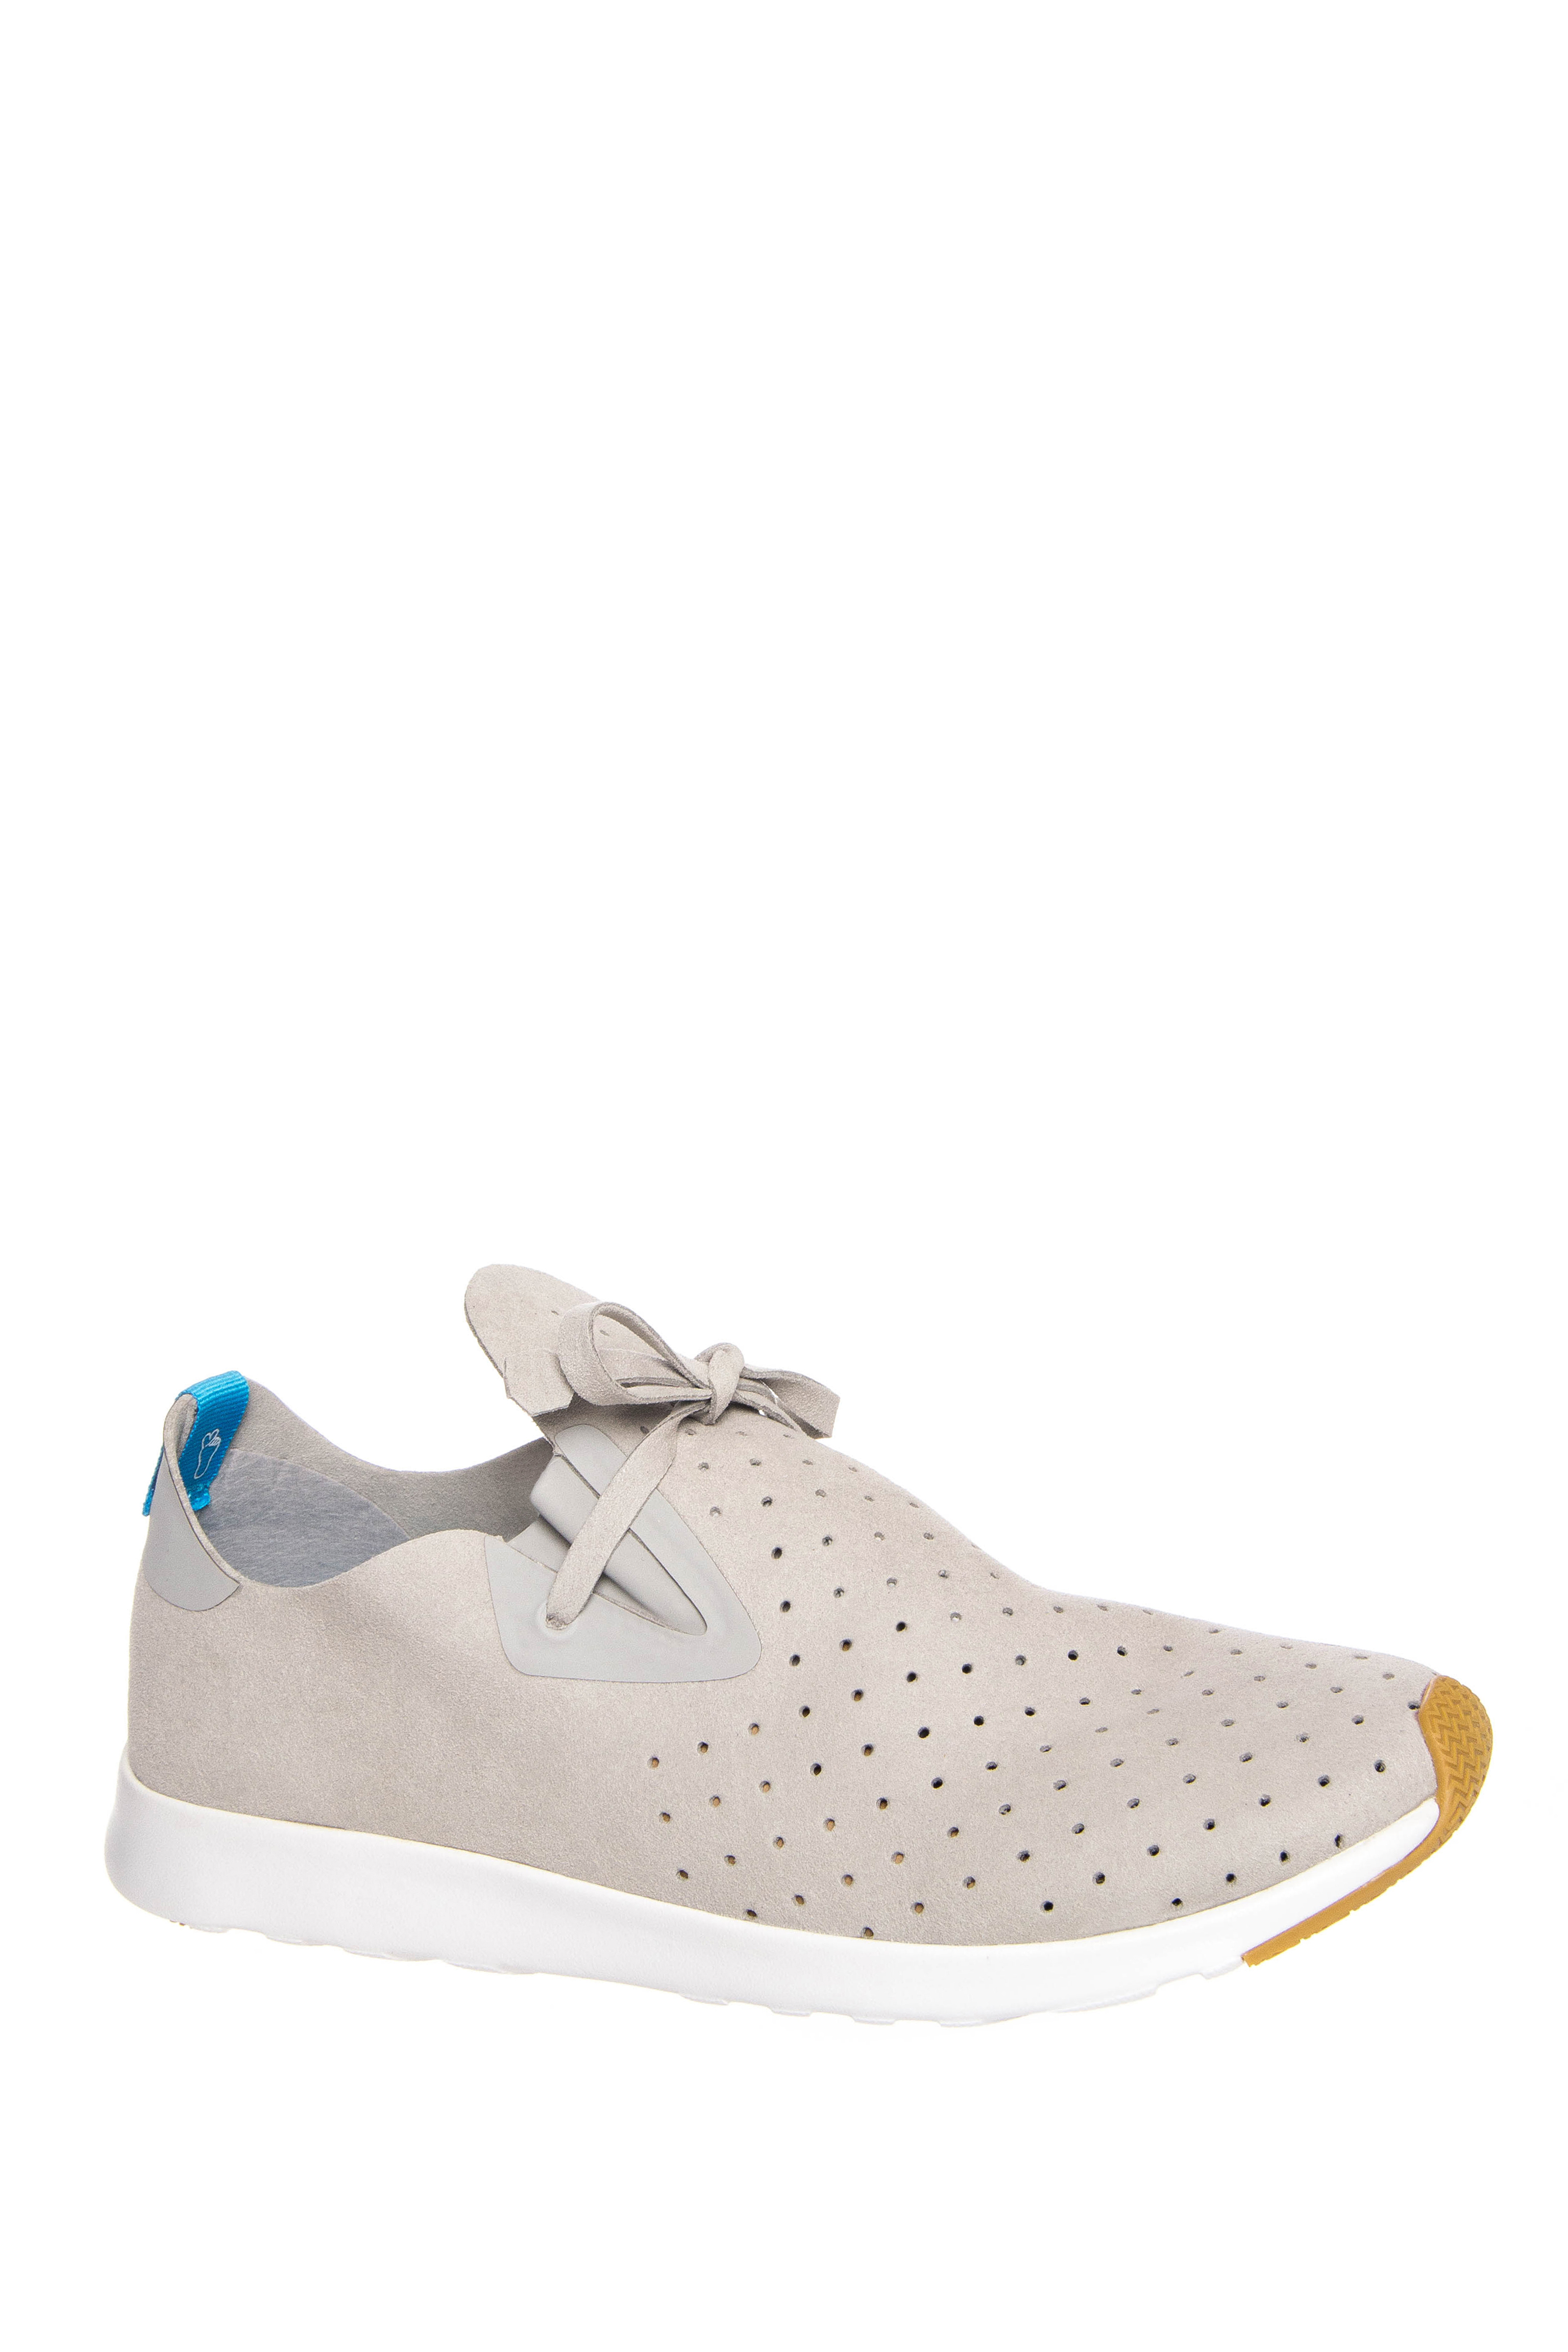 Native Unisex Apollo Moc Low Top Sneakers - Pigeon Grey / Shell White